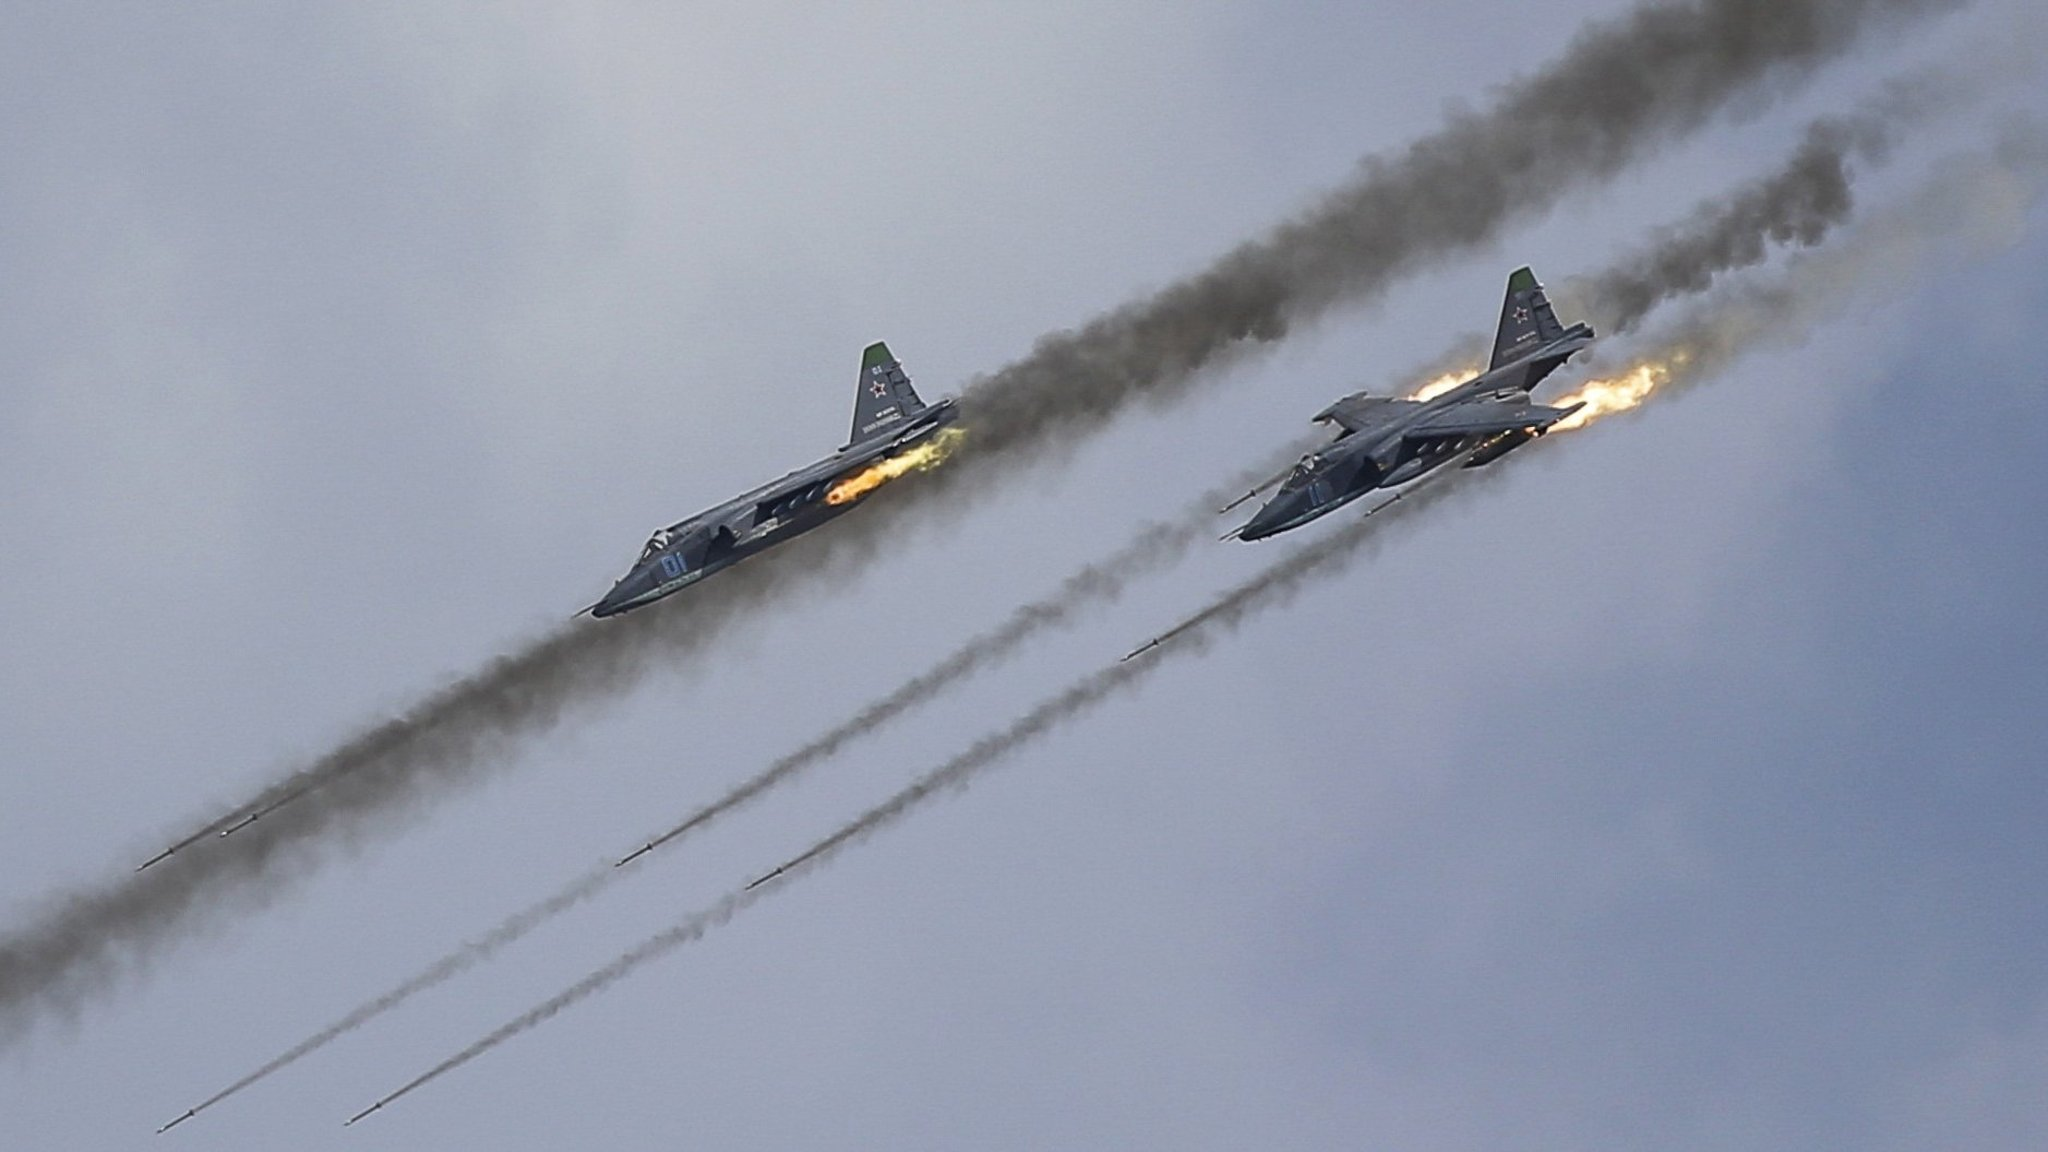 Russian Sukhoi Su-25 Frogfoot ground-attack planes perform during the Aviadarts military aviation competition at the Dubrovichi range near Ryazan, Russia